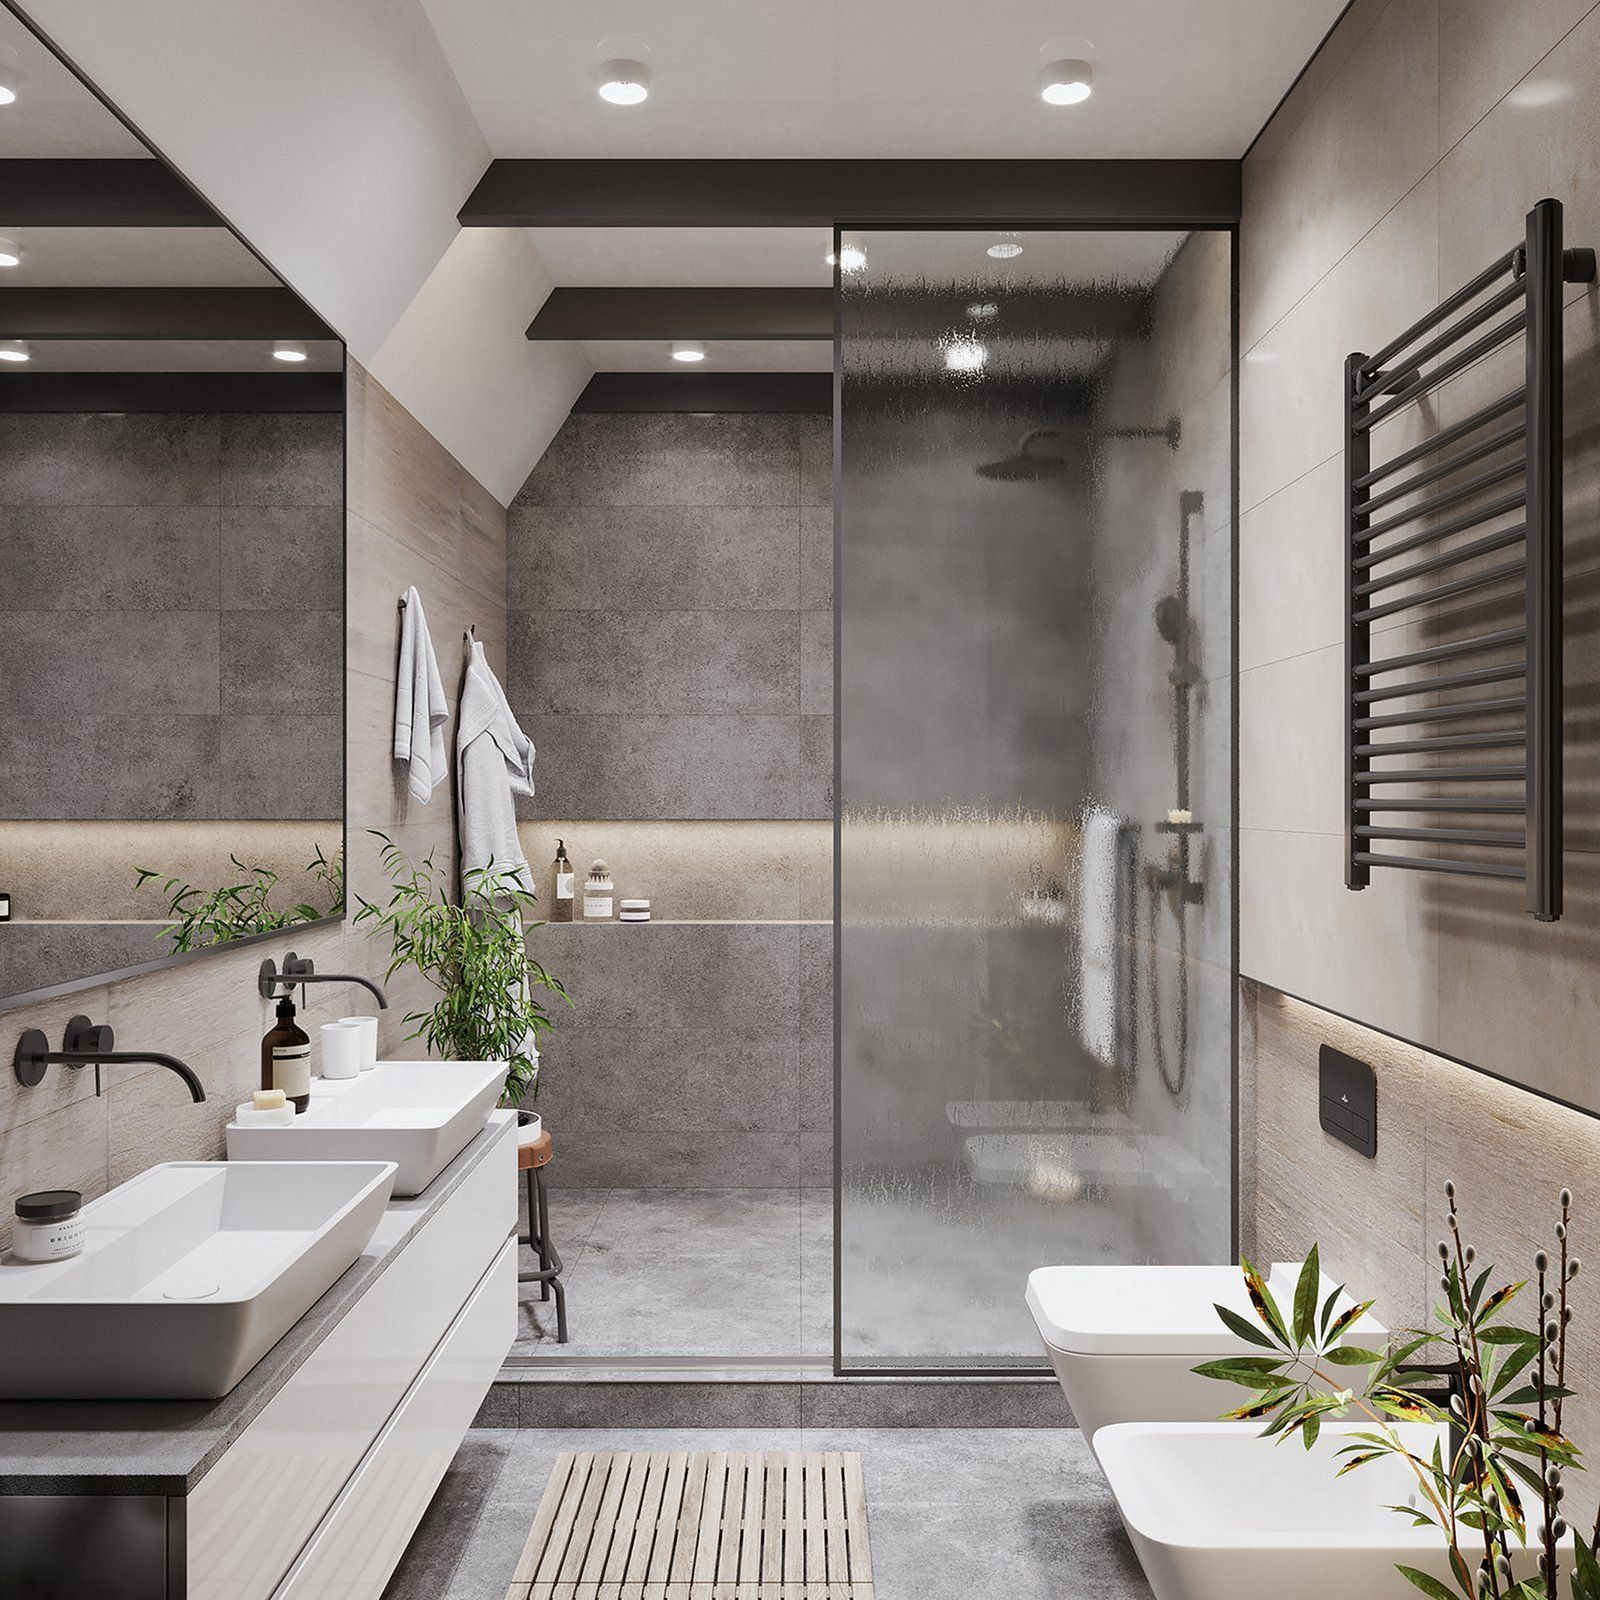 Photo of Inspiring 20 Most Beautiful Bathroom Design With Modern Bathtub Ideas dsgndcr.co…